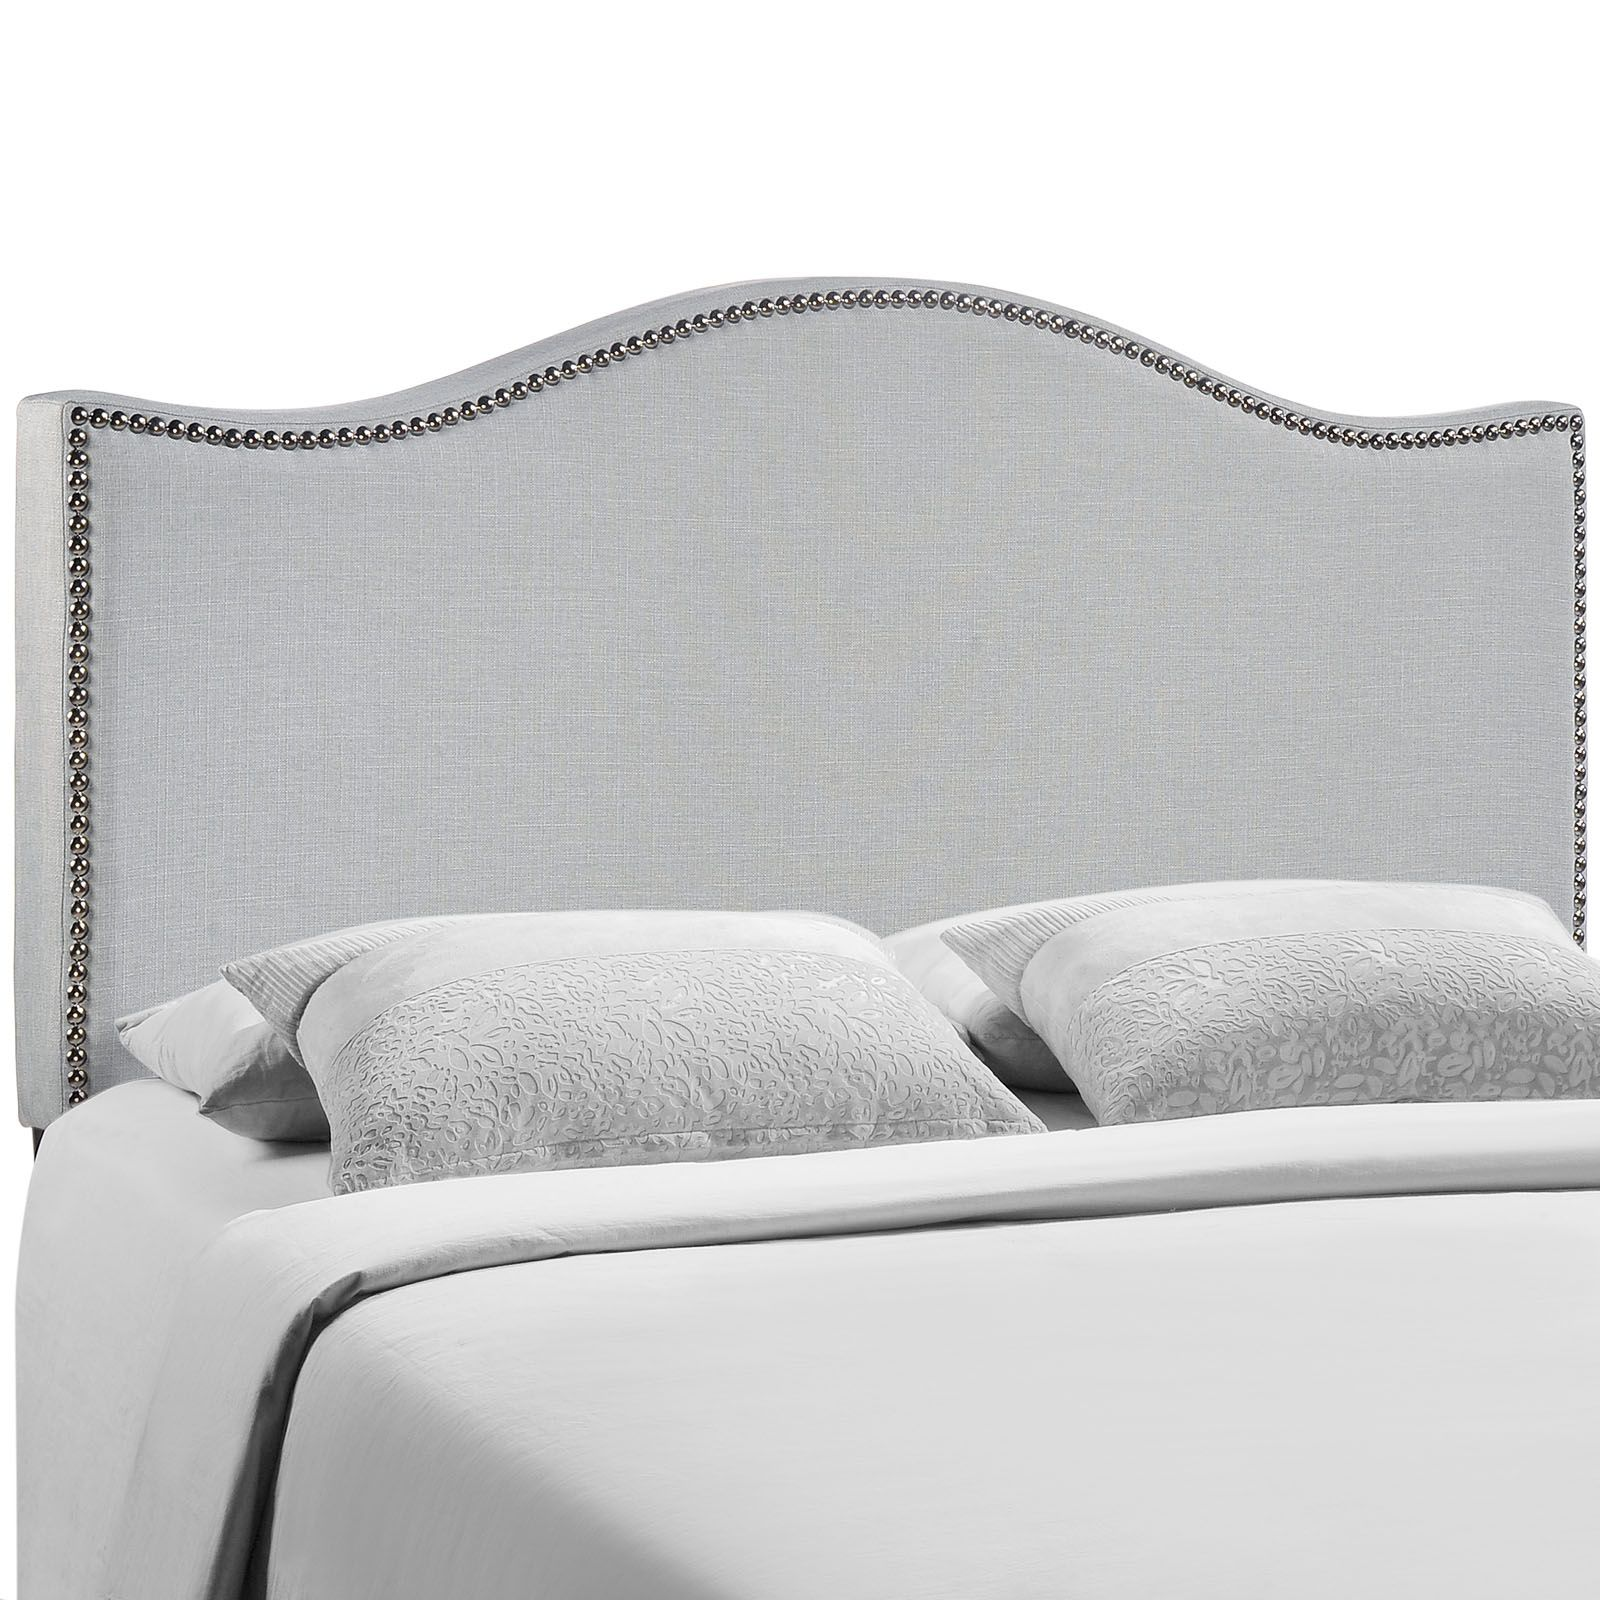 Curl Queen Headboard MOD-5206-GRY by LexMod | Decoraciones ...